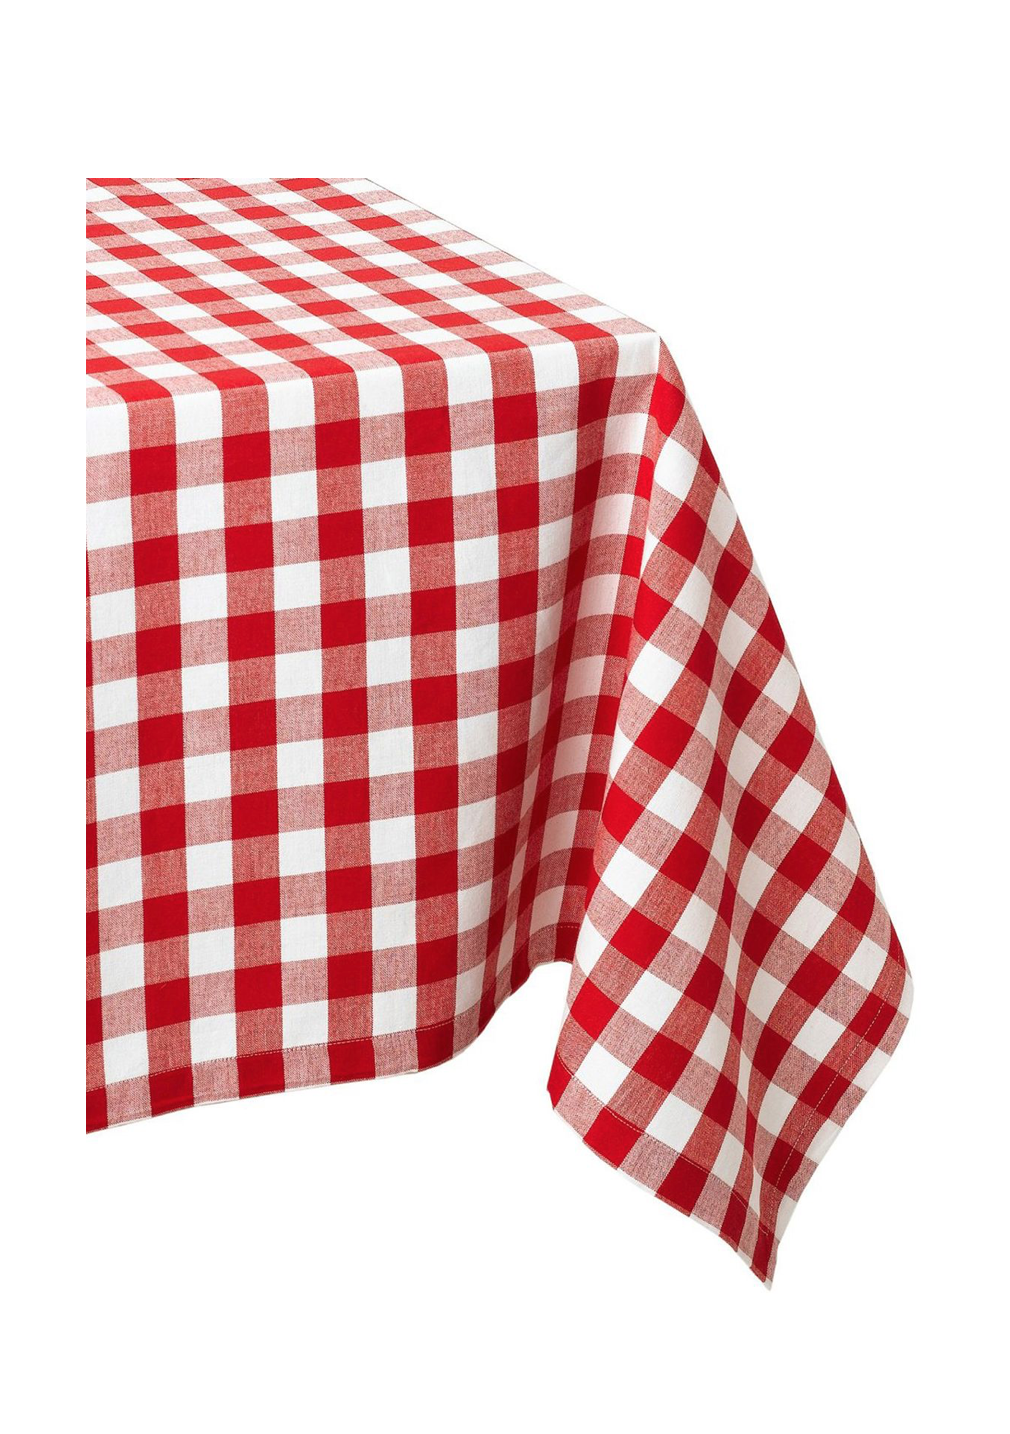 Red White Grid Table Cloth